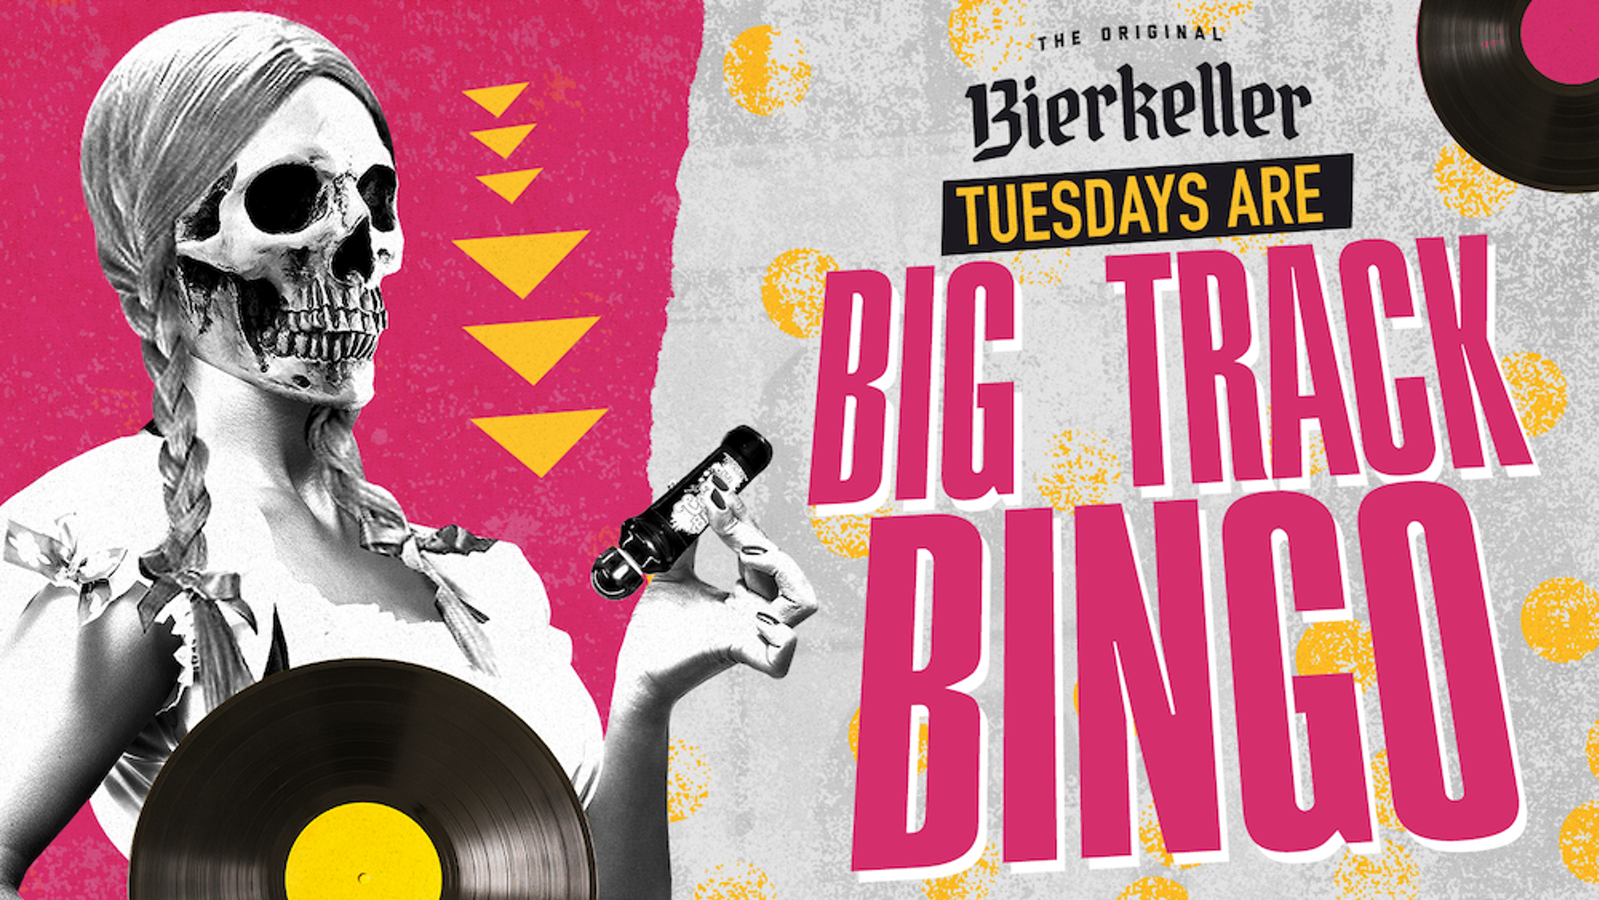 Tuesday – Big Track Bingo